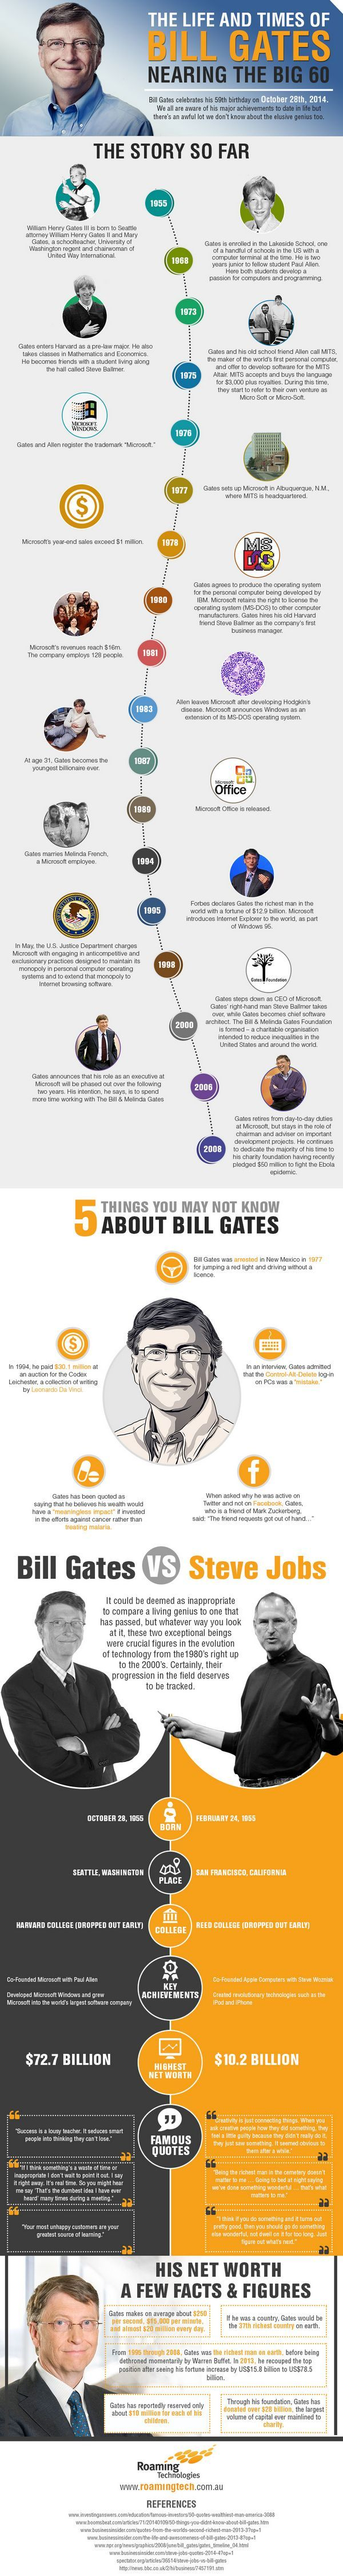 The Life and Times of Bill Gates - Nearing The Big 60 - Bill Gates Celebrates his 59th birthday on October 28th, 2014. We all aware of his major achievements to date in life but there's an awful lot we don't know about the elusive genius too. - Inspiring Infographics